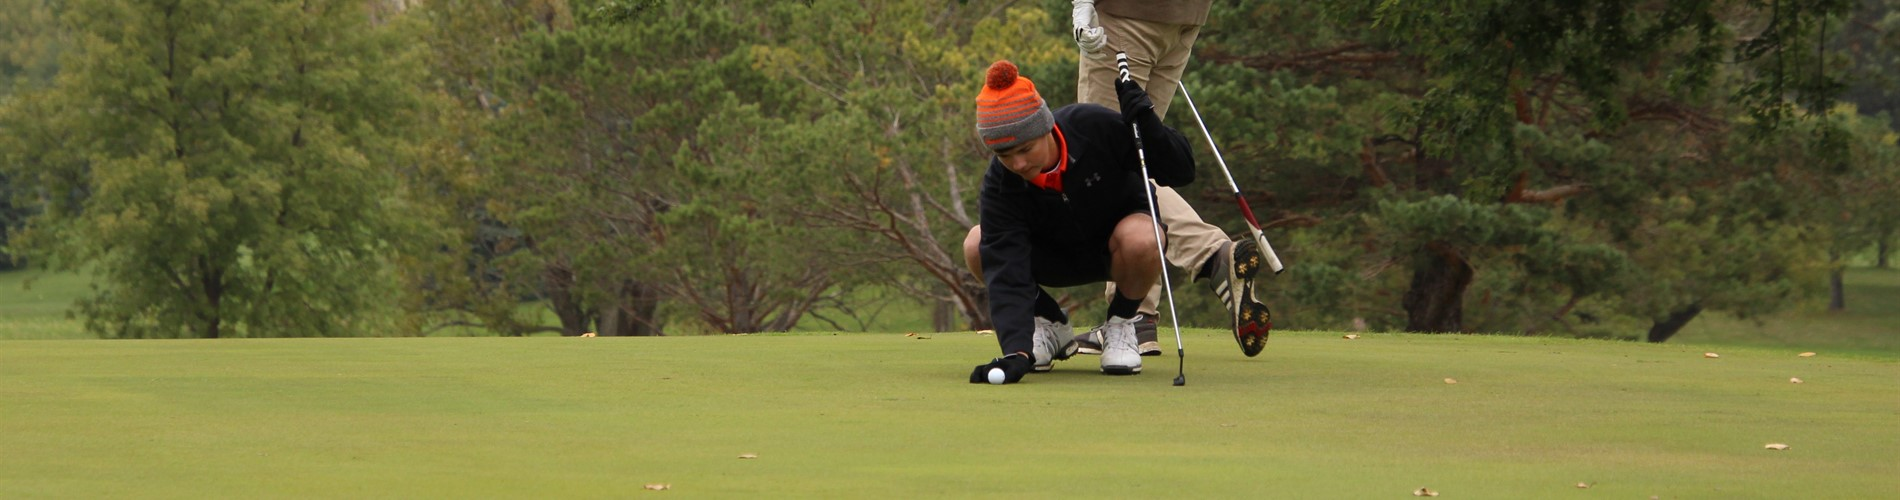 Junior Brandon Kubly prepares to putt on Hole 18 at Rocky Run during the 2018 State Golf meet.